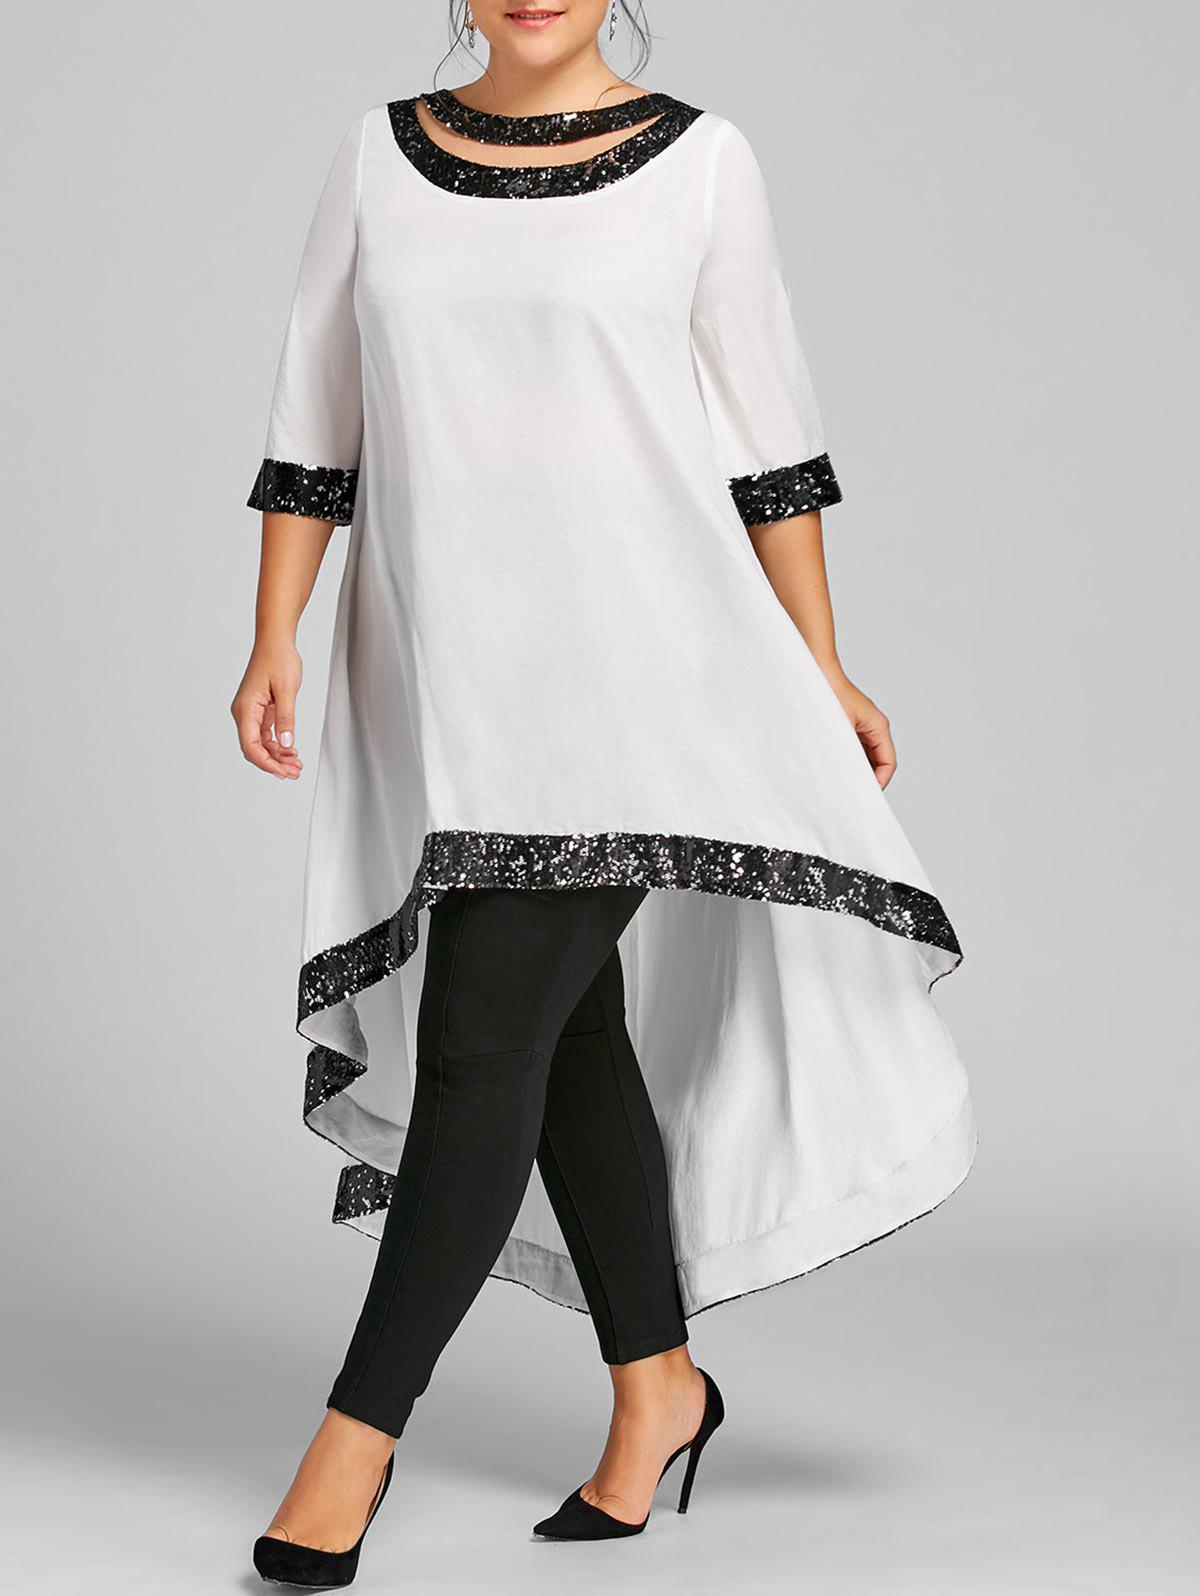 Plus Size Sequined Trim High Low DressWOMEN<br><br>Size: XL; Color: OFF-WHITE; Style: Brief; Material: Polyester; Silhouette: A-Line; Dresses Length: Knee-Length; Neckline: Boat Neck; Sleeve Length: 3/4 Length Sleeves; Embellishment: Sequined; Pattern Type: Solid; With Belt: No; Season: Fall,Spring; Weight: 0.3500kg; Package Contents: 1 x Dress;